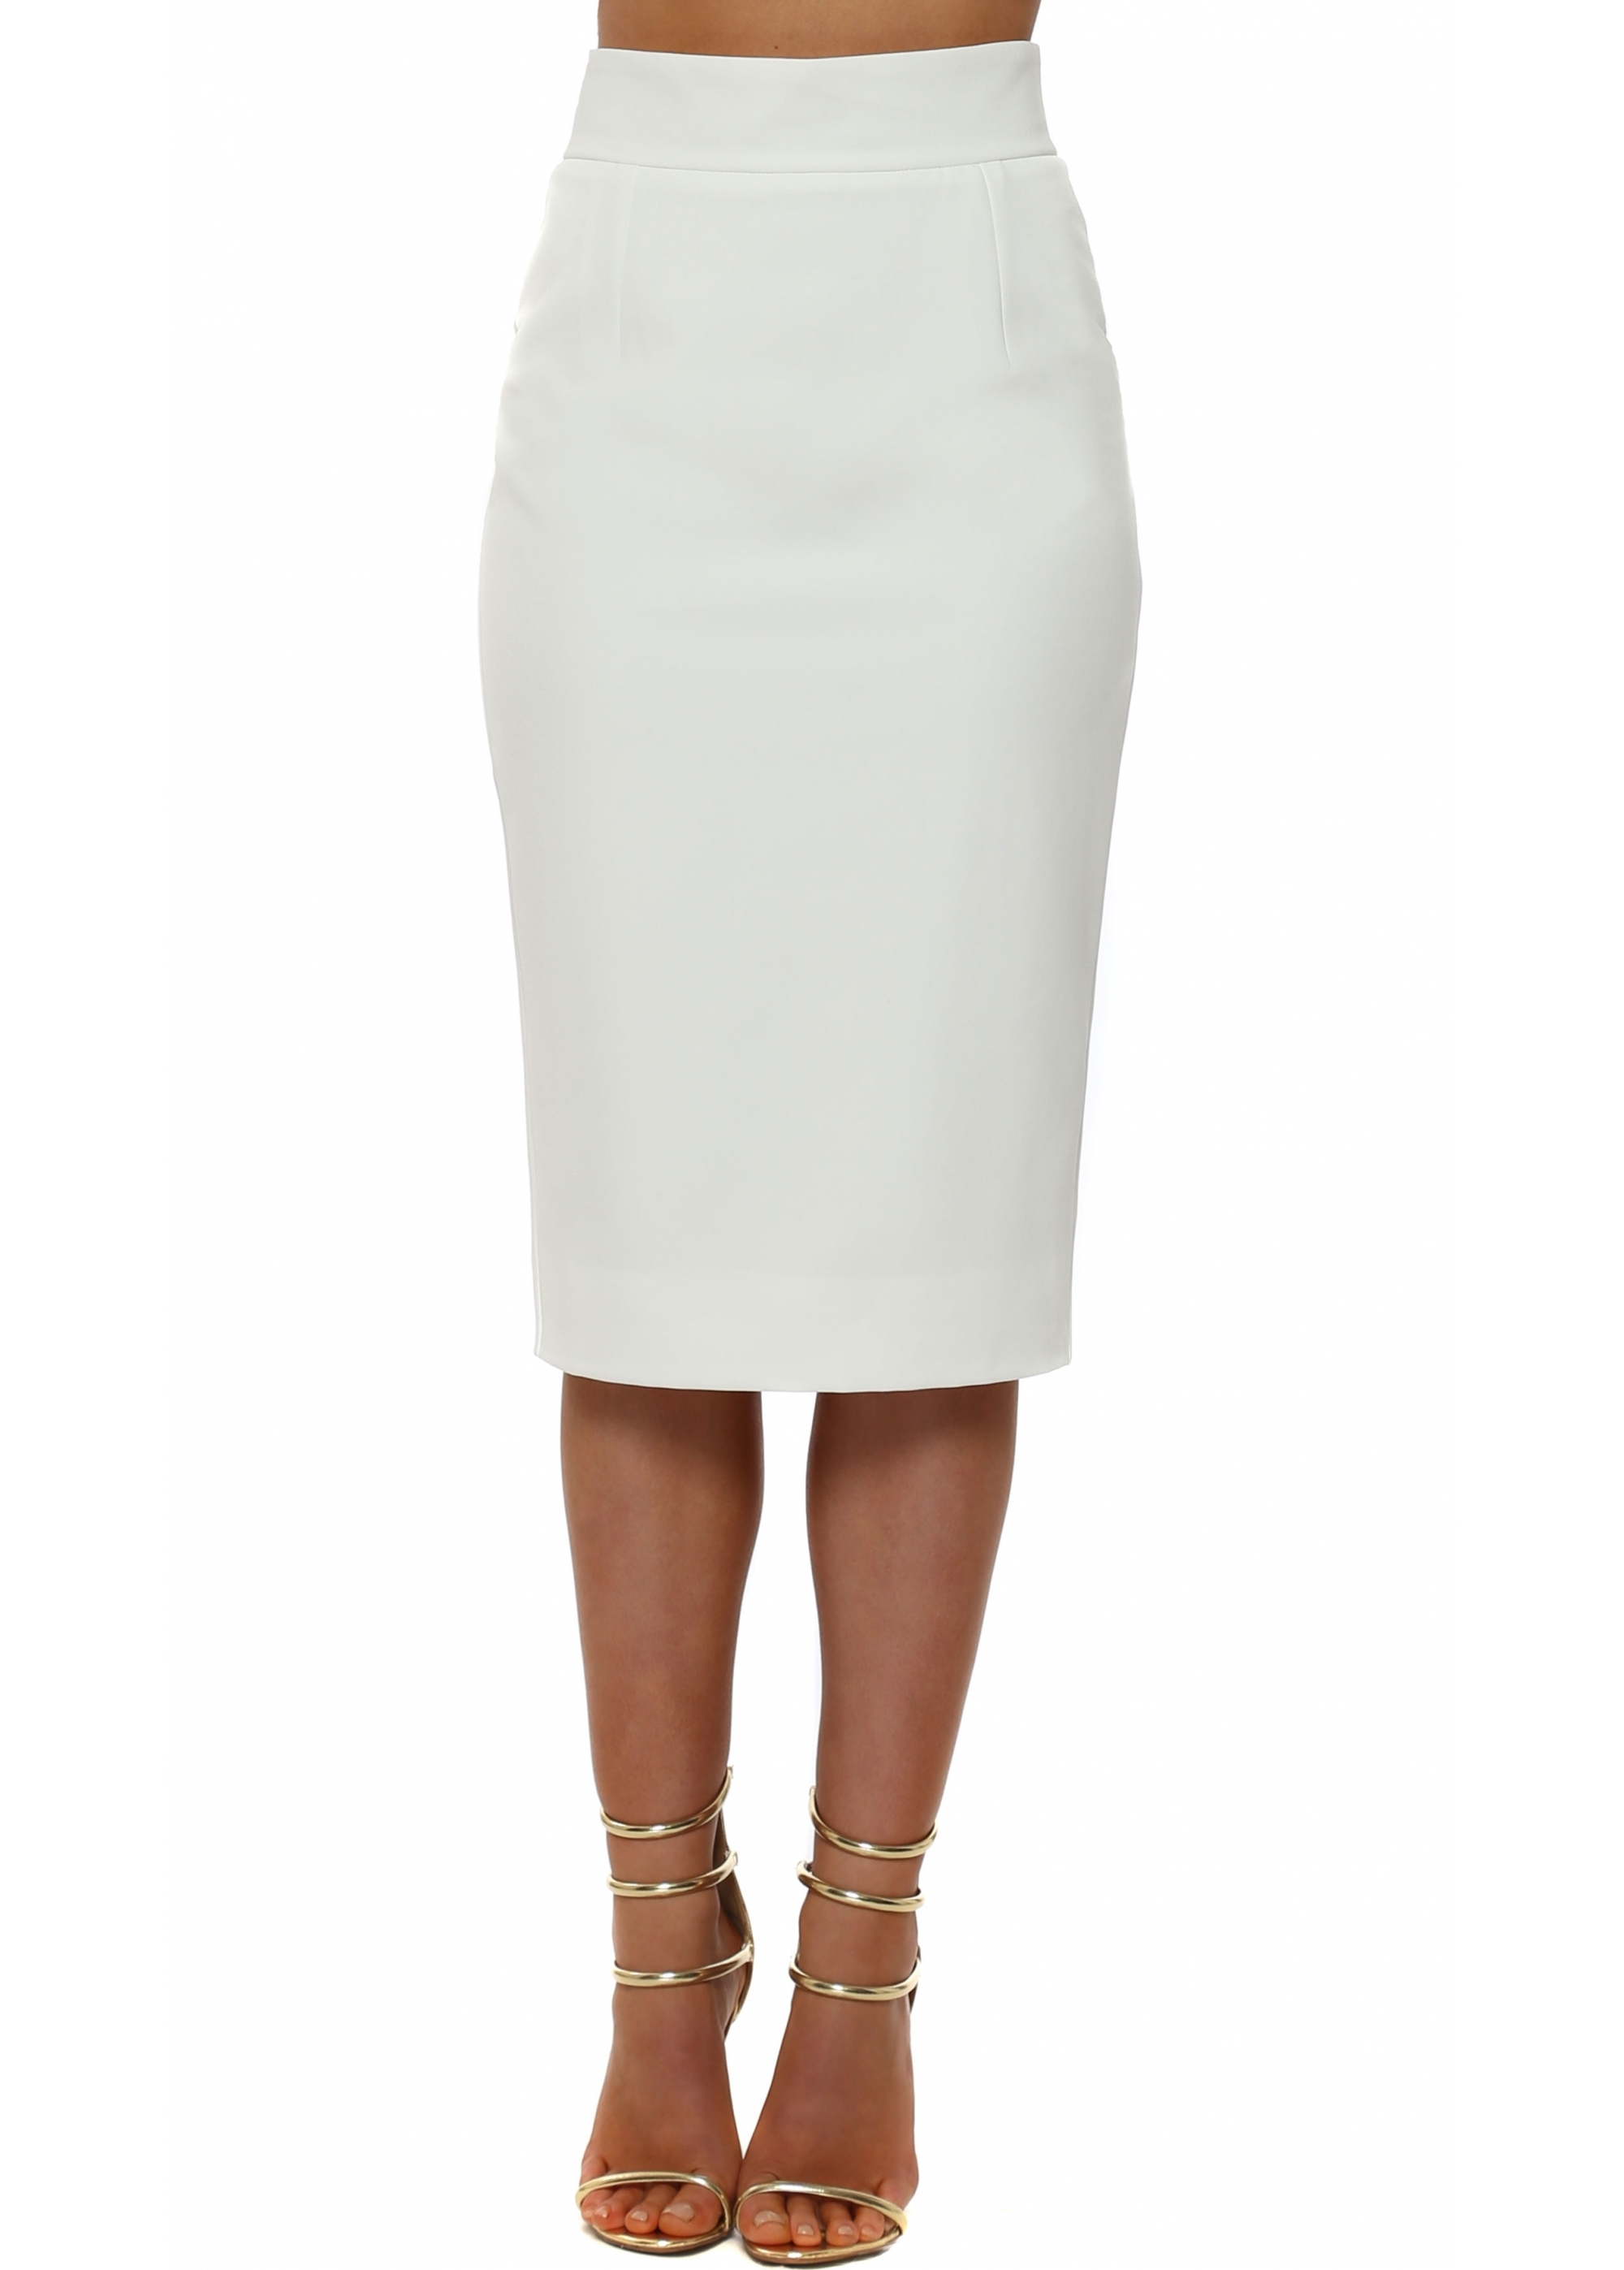 Coast Alexis Pu Skirt. Feminine but with an edge the Alexa Pu Ruffle Pencil Skirt is a wardrobe must-have. This midi skirt takes the classic pencil skirt silhouette and refreshes it .